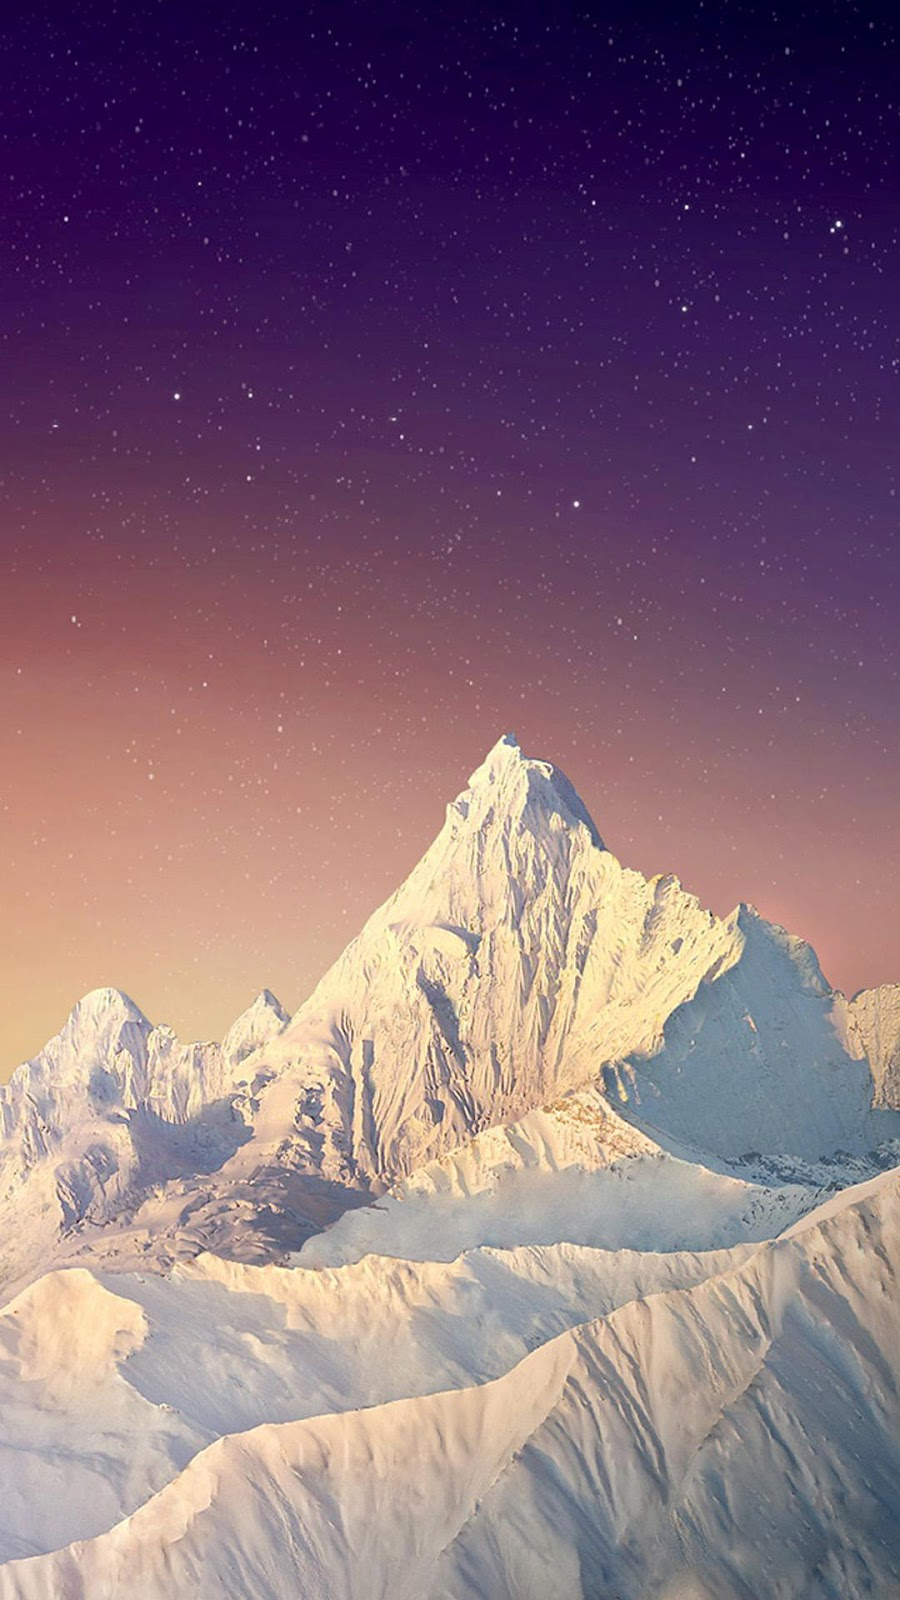 Popular Wallpaper Mountain Iphone 7 - mountain_snow-hd-iPhone-7-and-iphone-7-plus-Wallpaper  Picture_386018.jpg